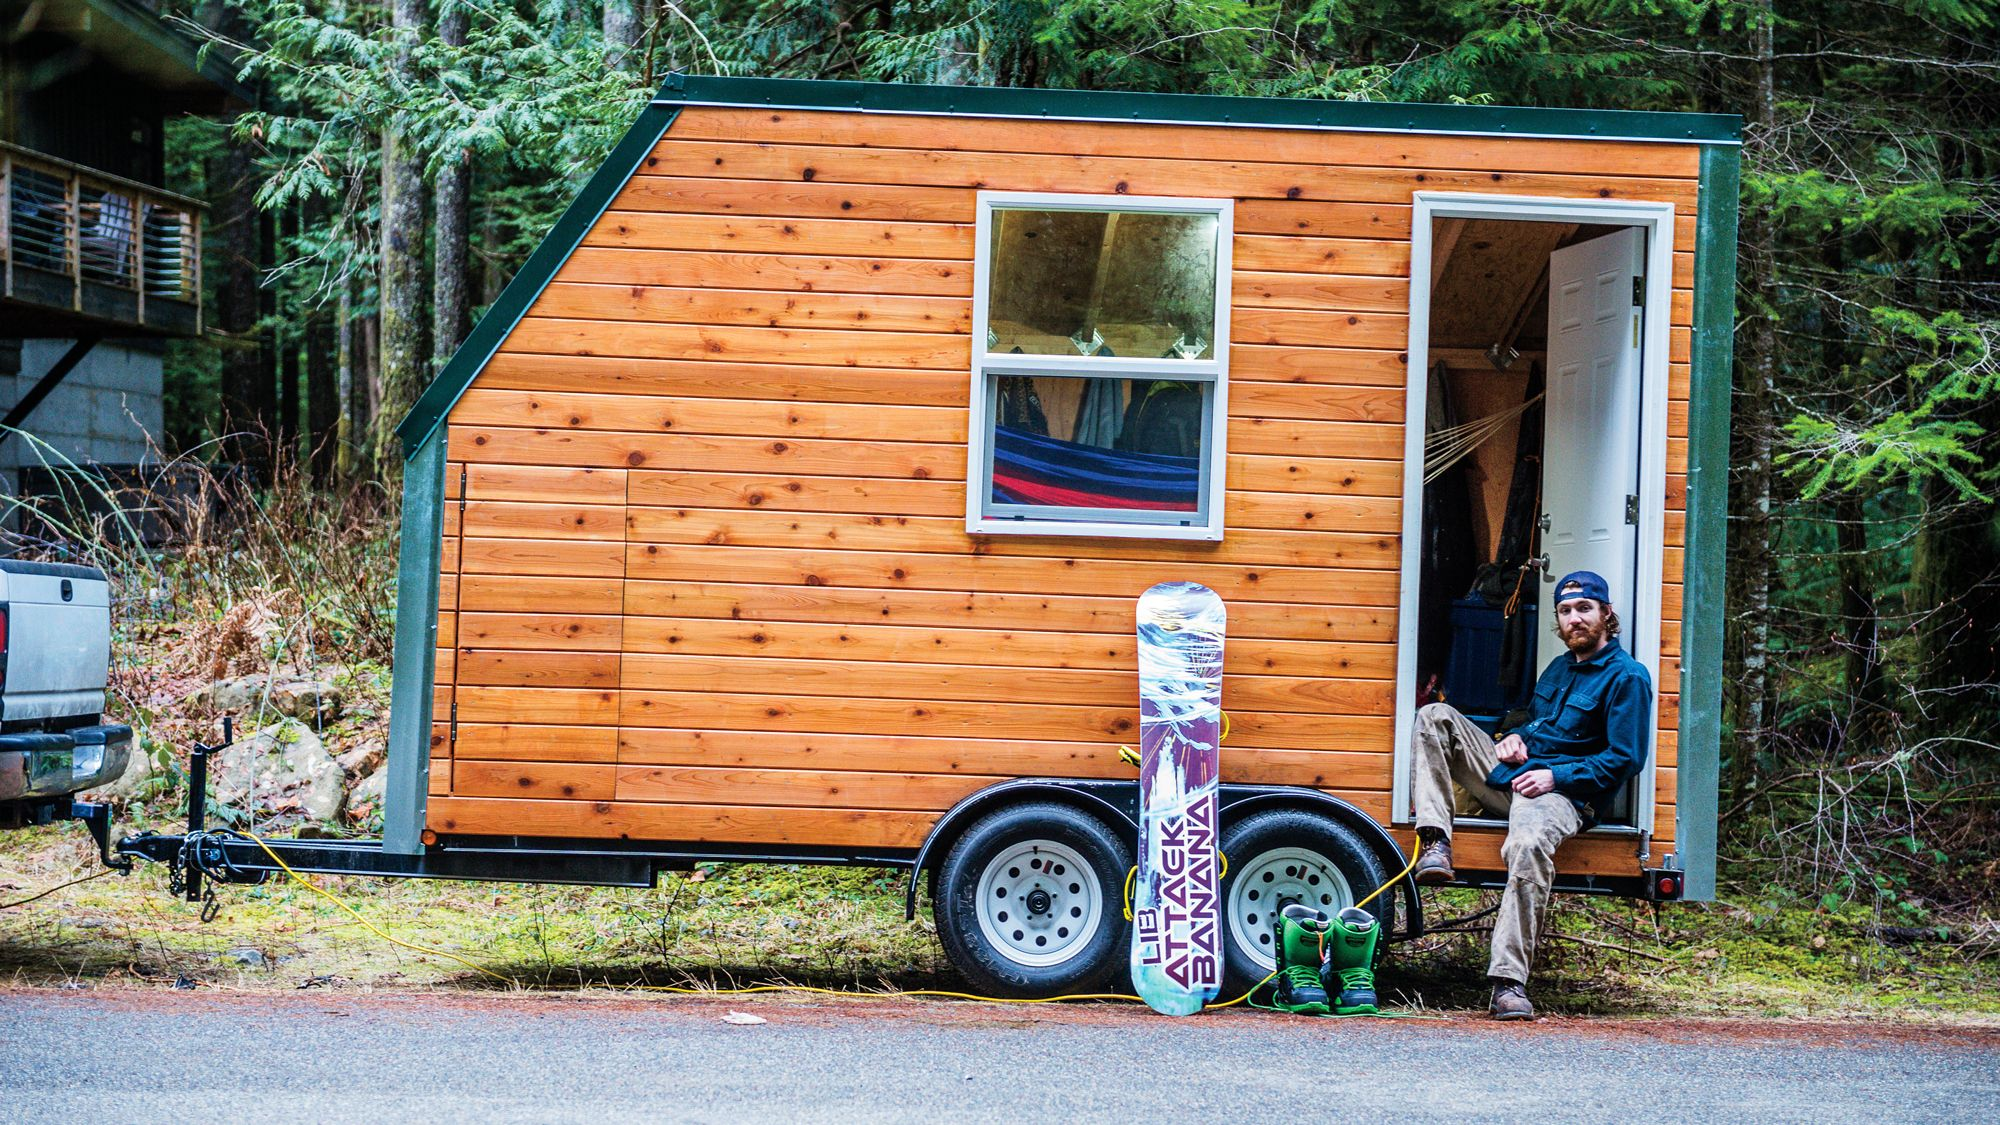 Snowboarder Magazine Snowboarding Videos Photos And More Diy Tiny House Little Houses On Wheels Traveling Tiny House